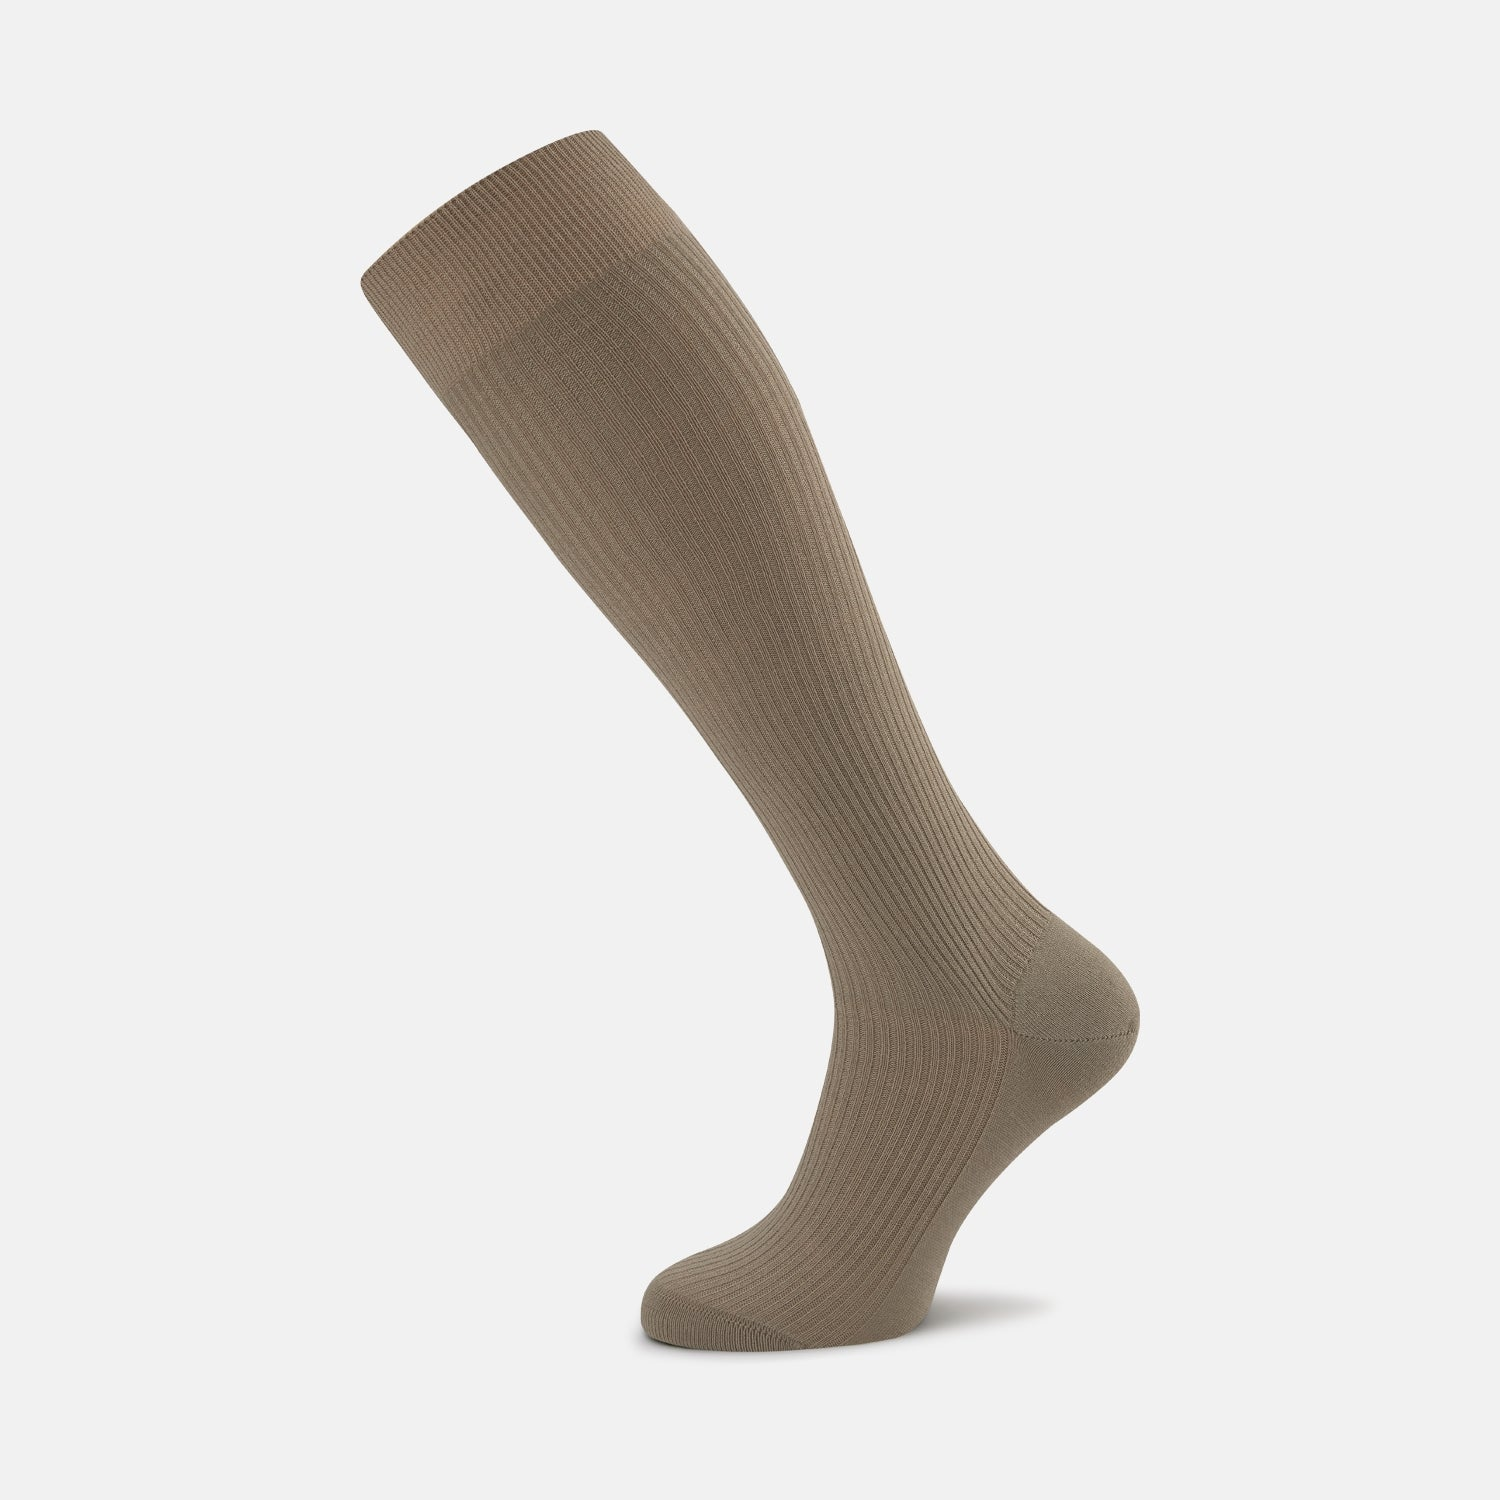 Light Khaki Long Merino Wool Socks - 11.0 from Turnbull & Asser